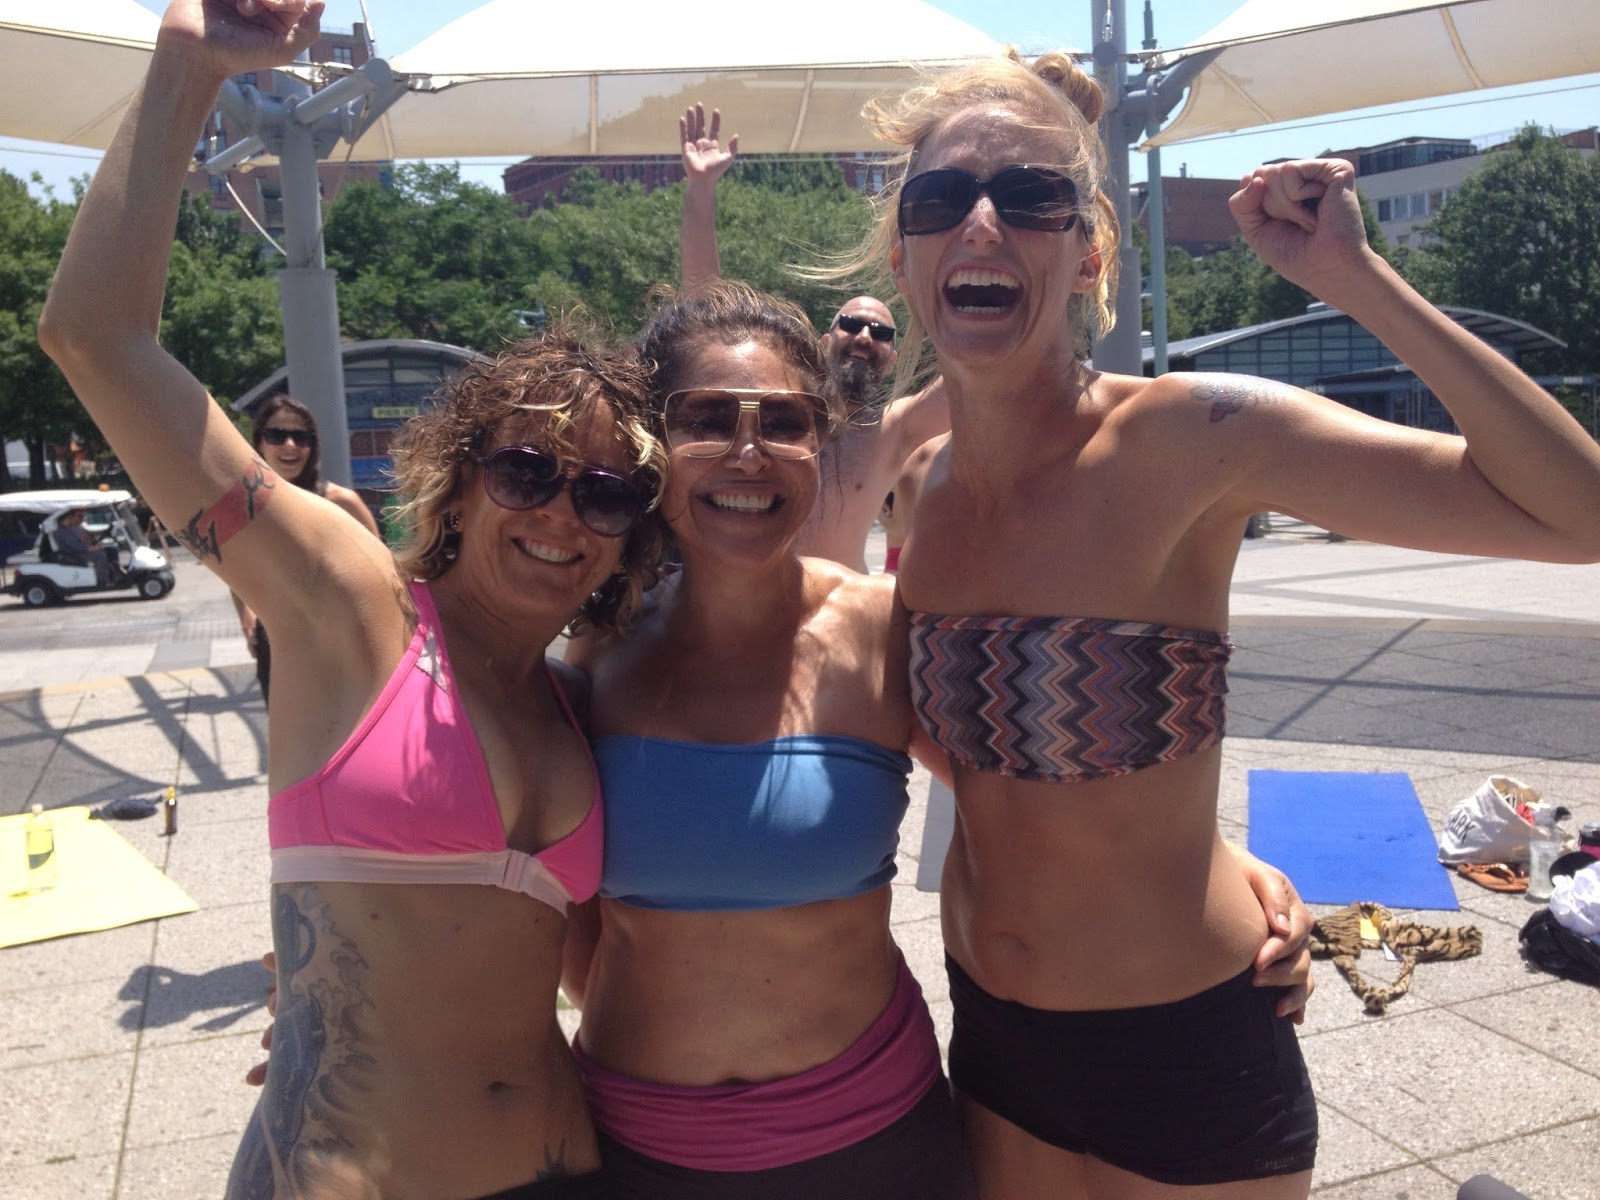 Dylan Dreyer Bikini Related Keywords - Dylan Dreyer Bikini